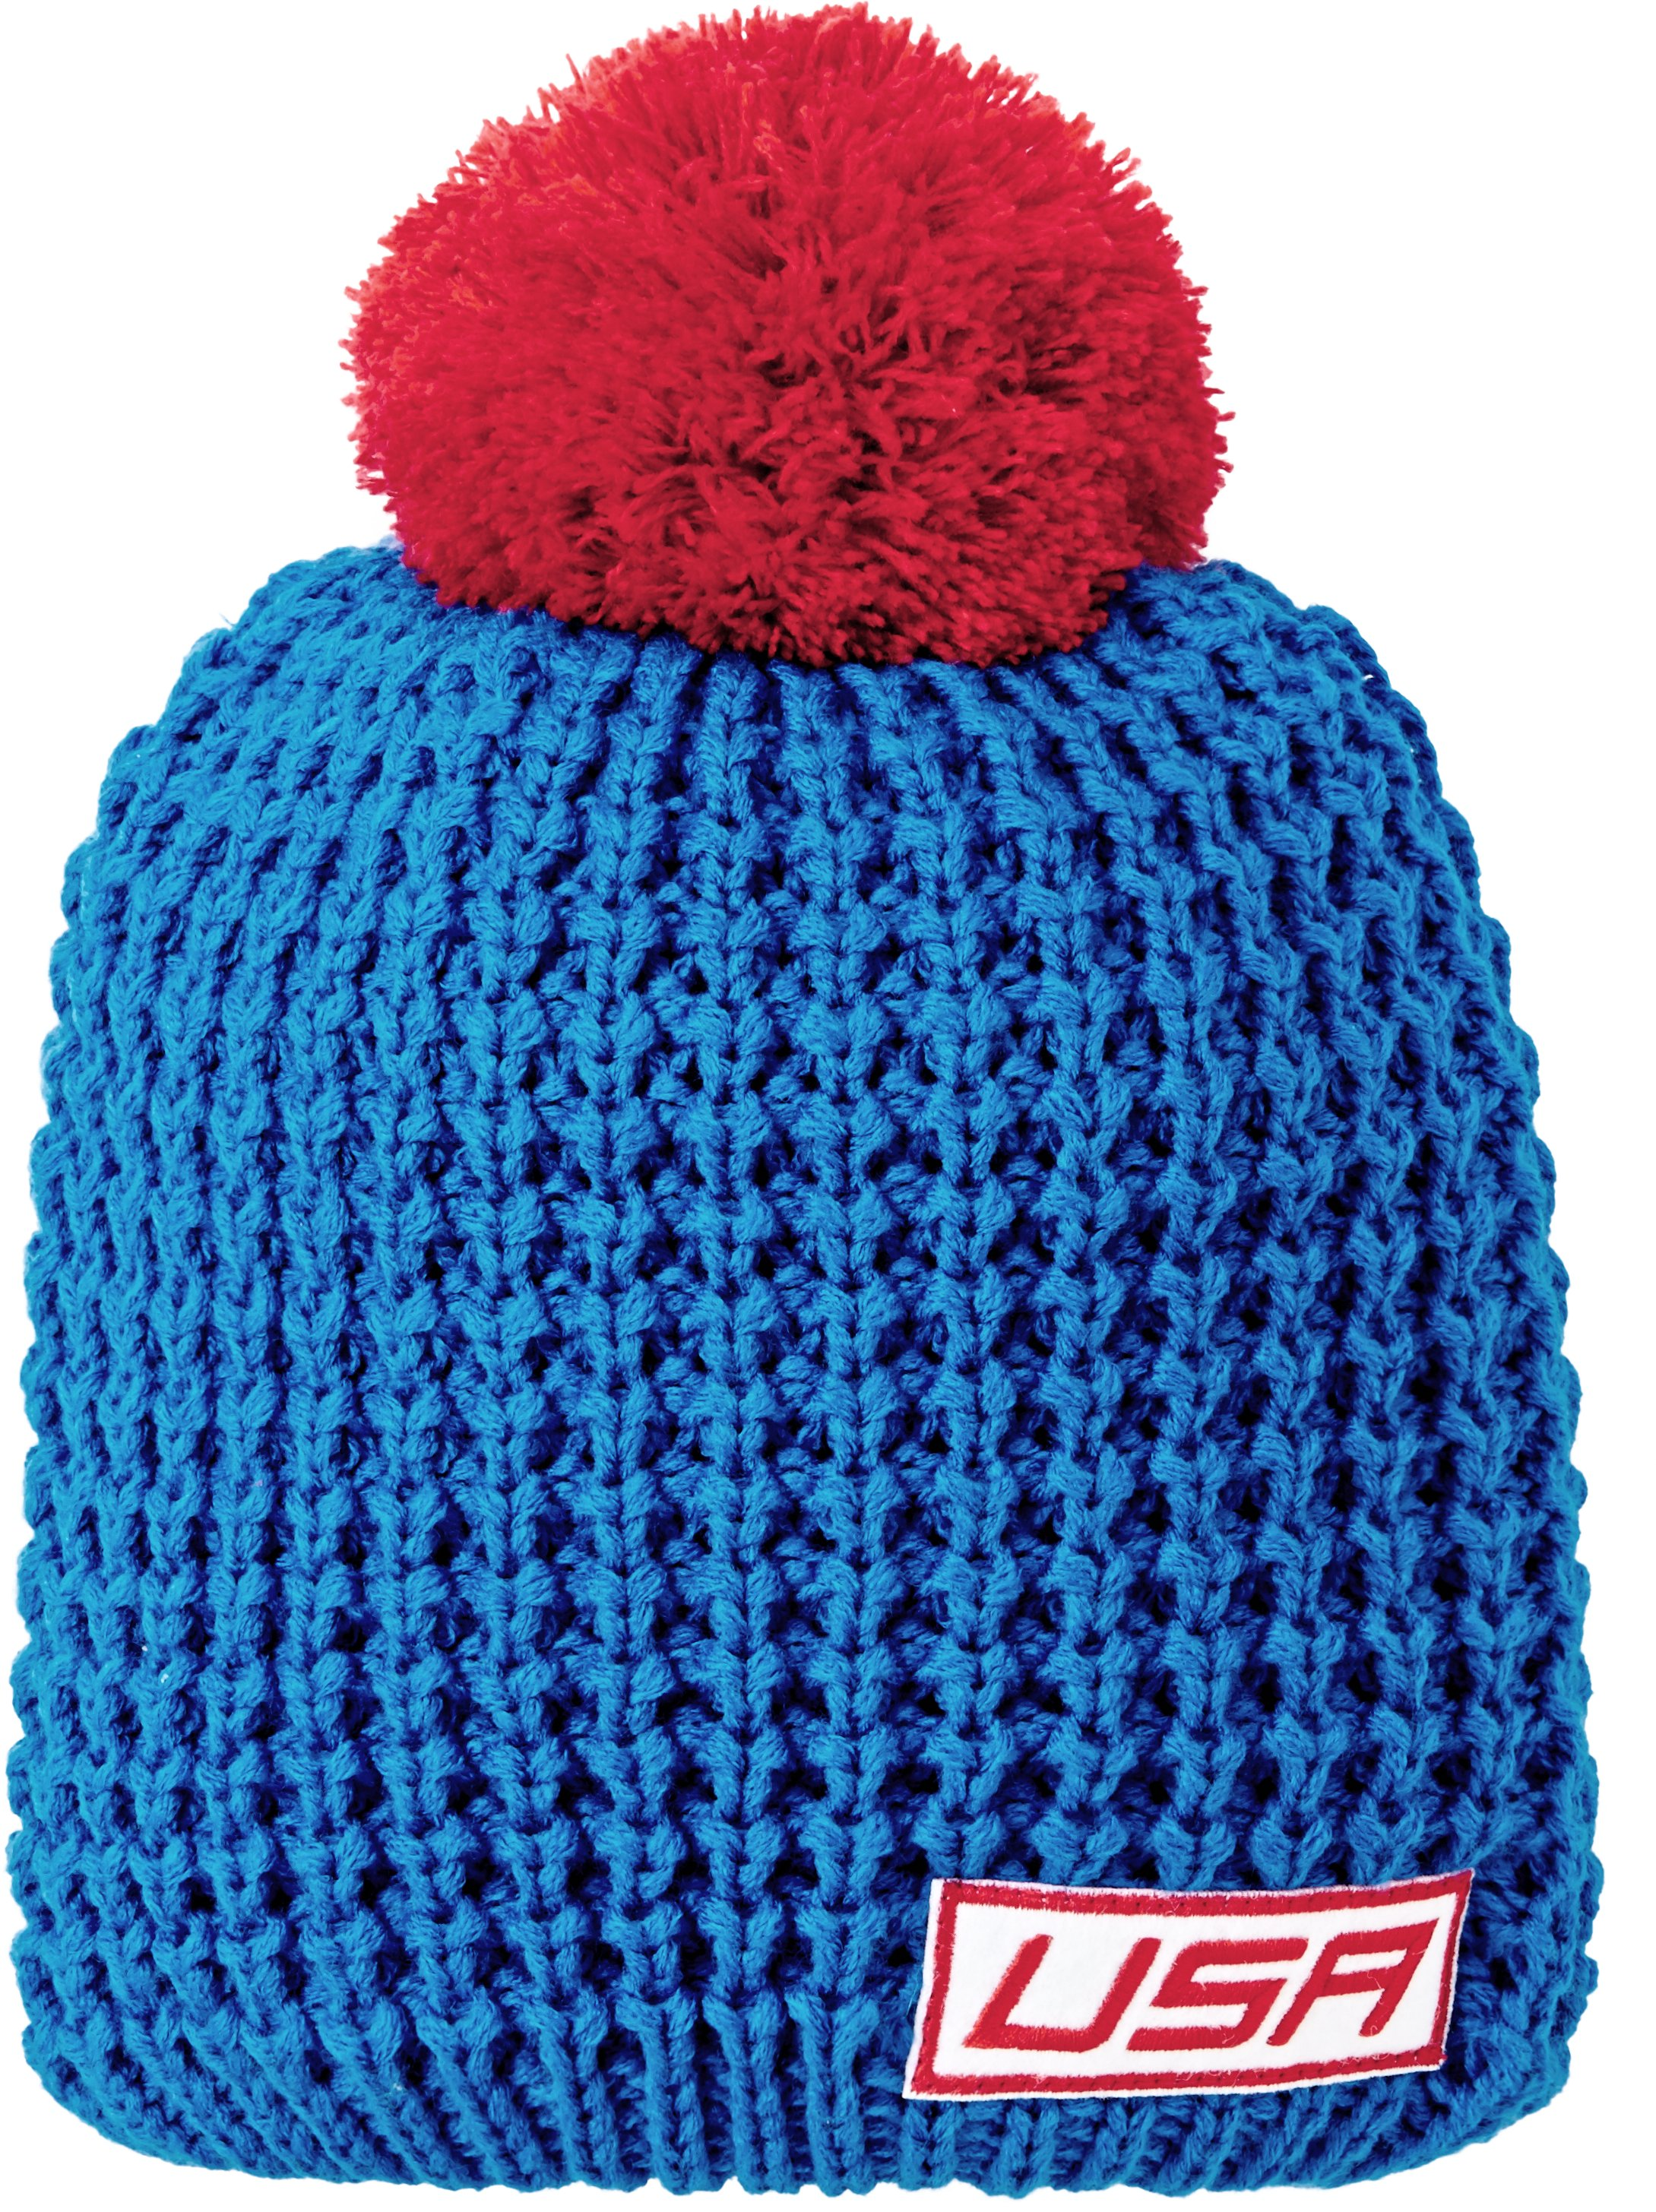 Women's USA Knit Beanie, SCATTER, zoomed image